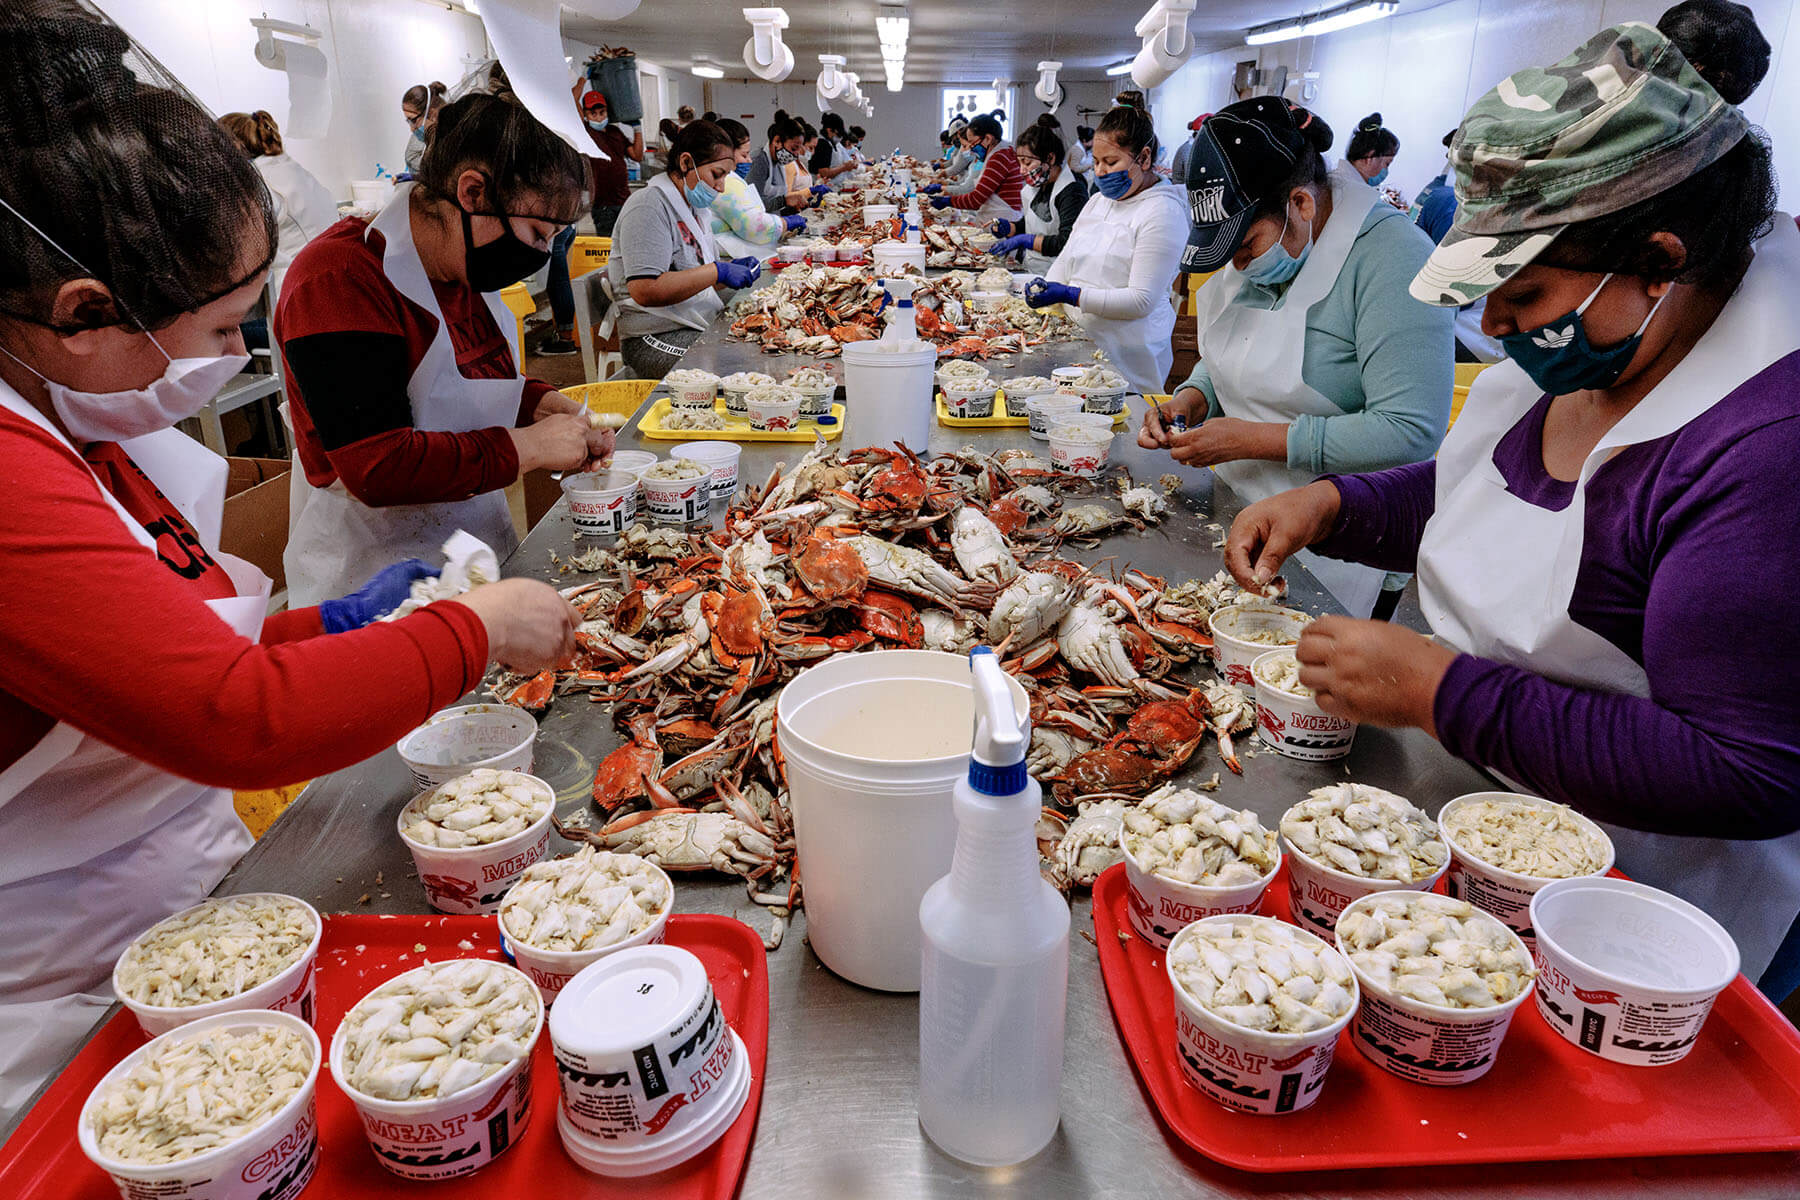 Workers pick crabs at crab house.